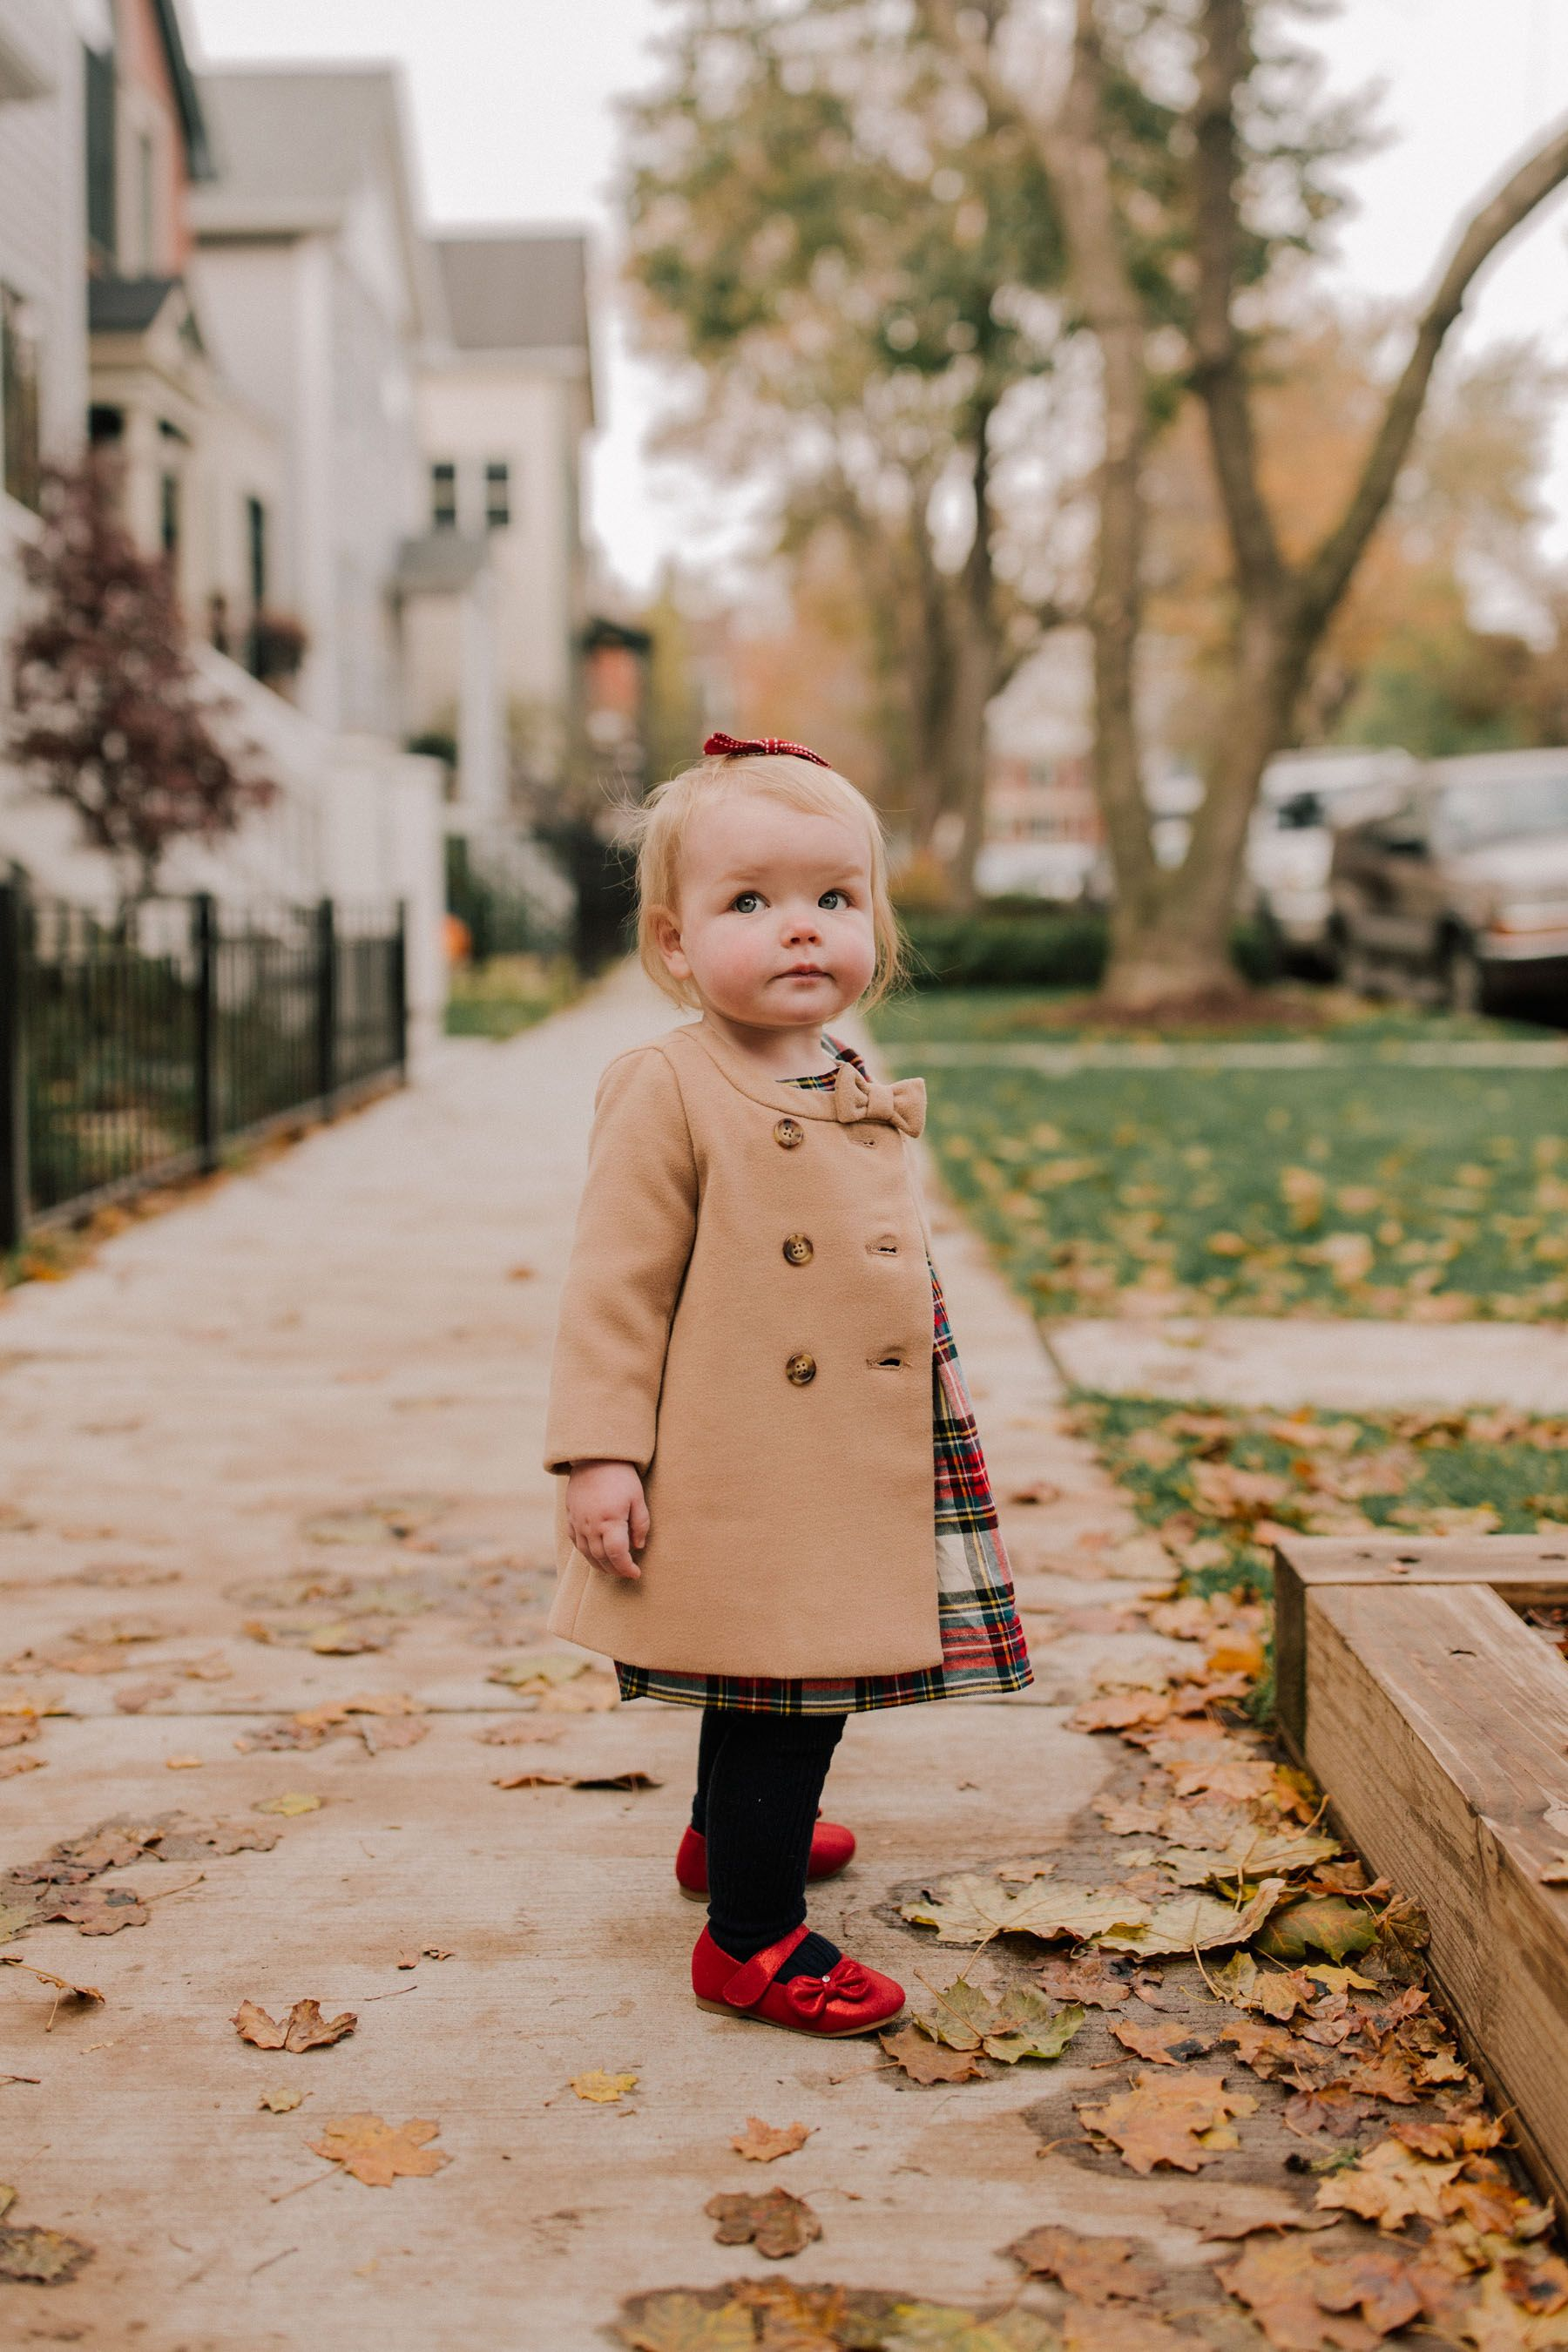 Super cute holiday outfit for a little girl plus sharing how i am using and loving whip by olay